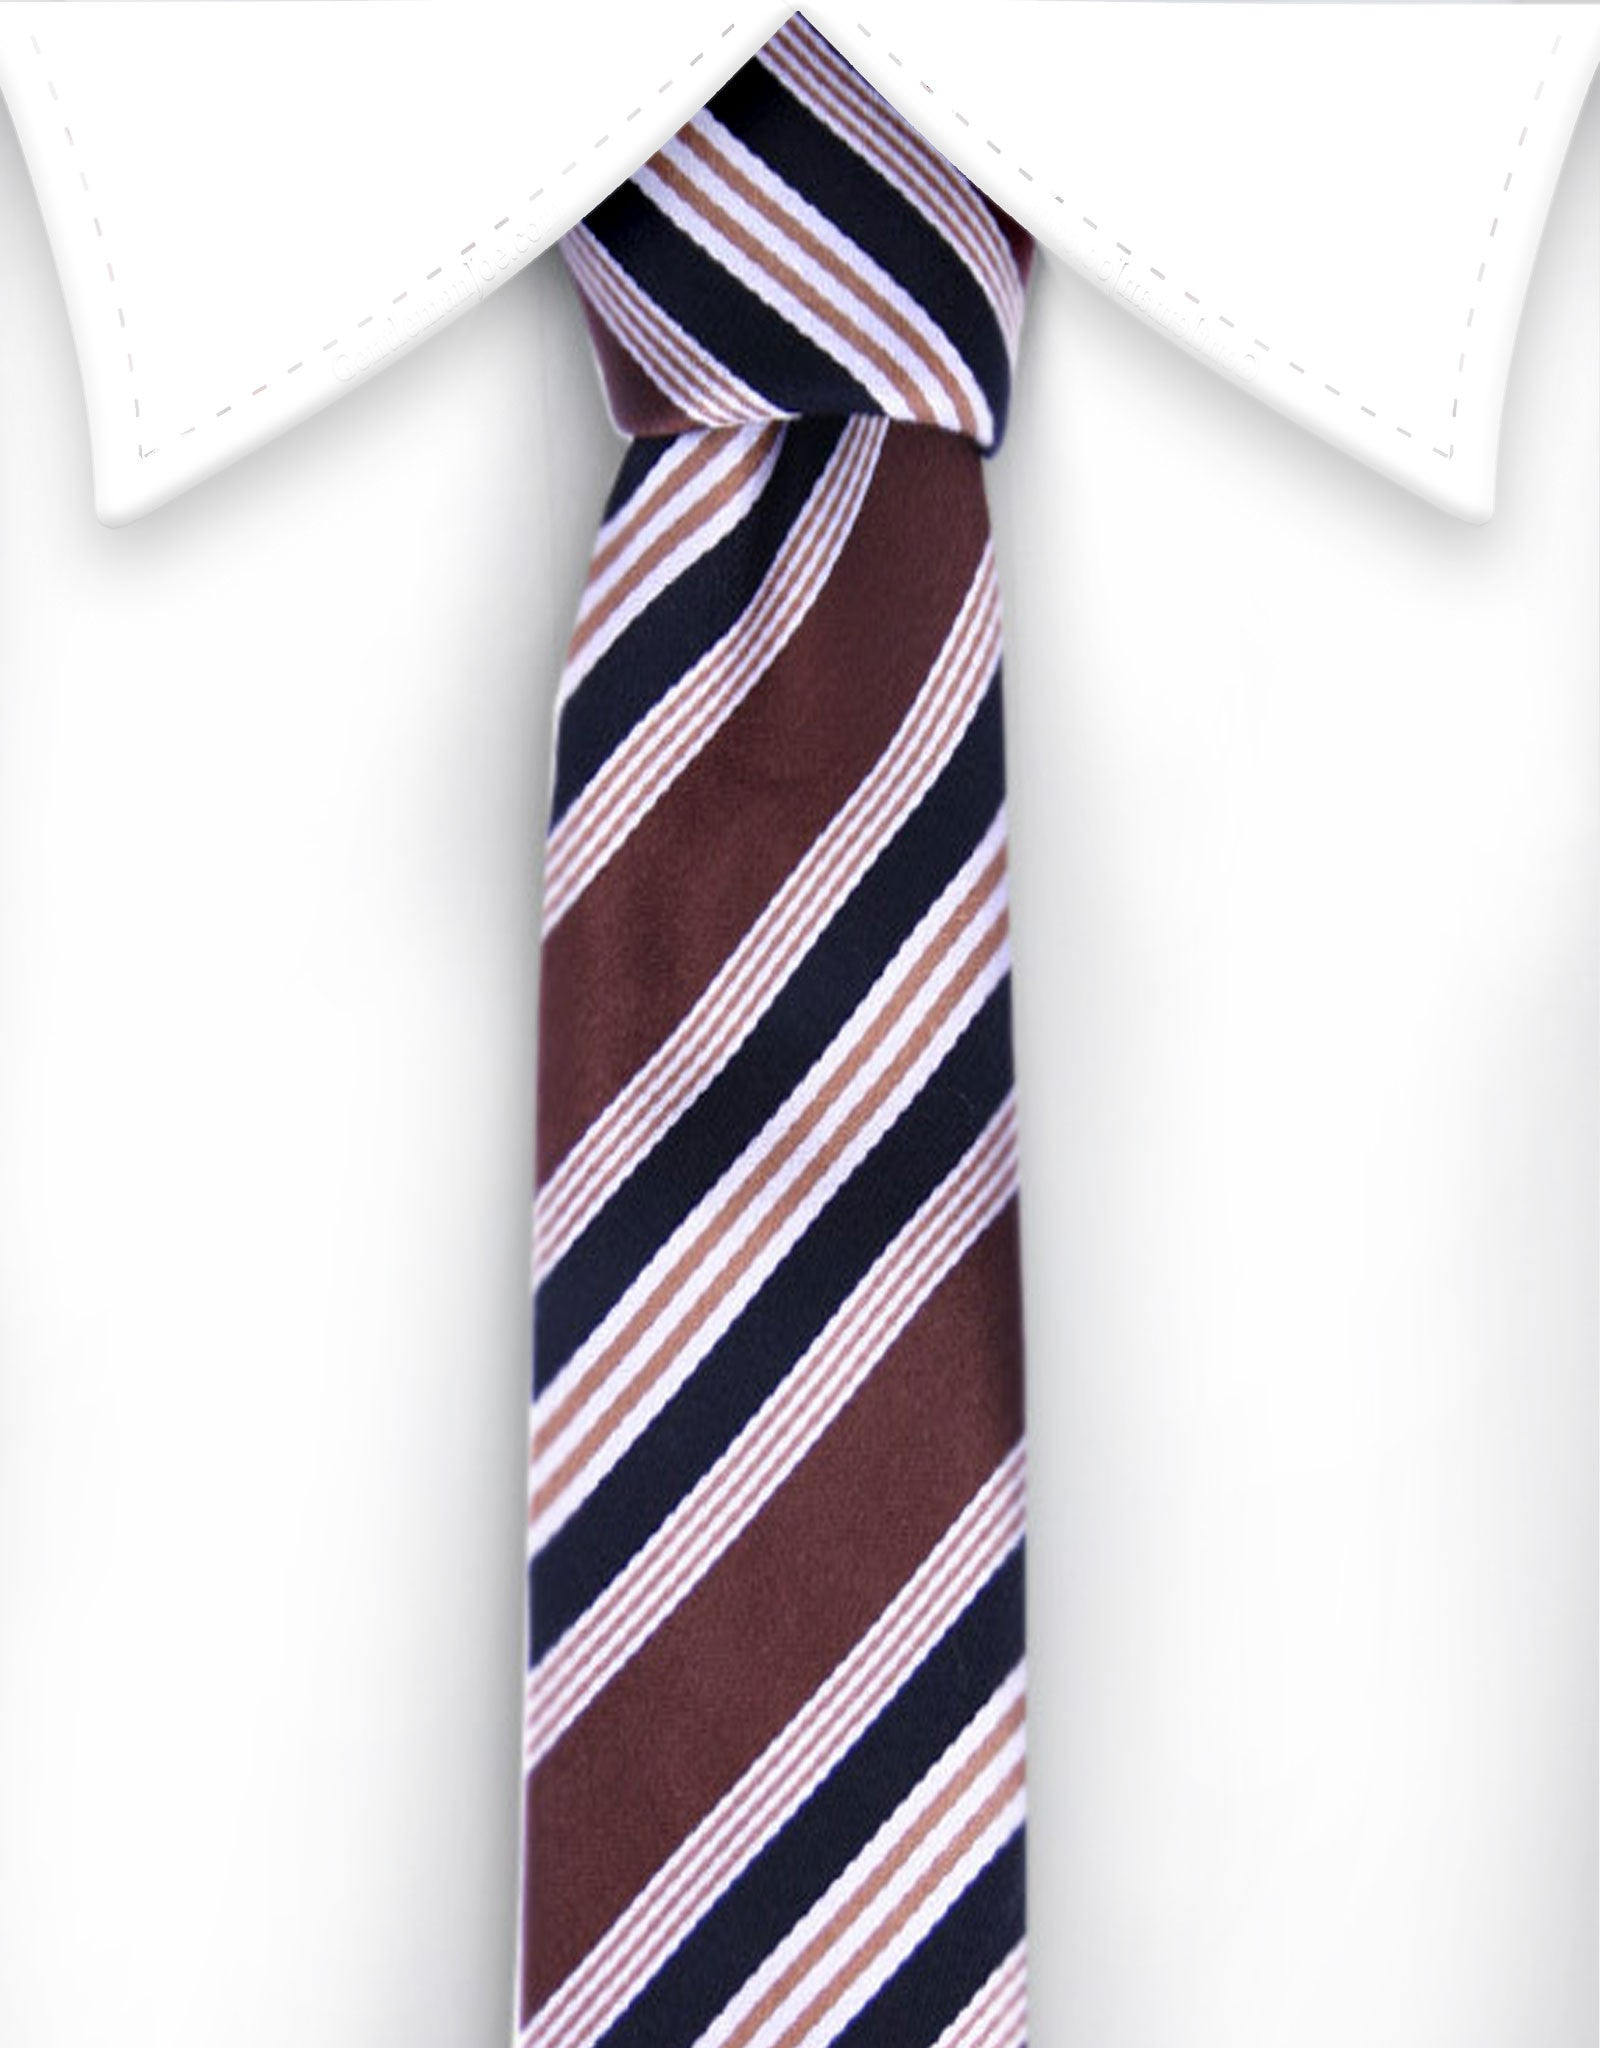 Brown and black striped narrow tie